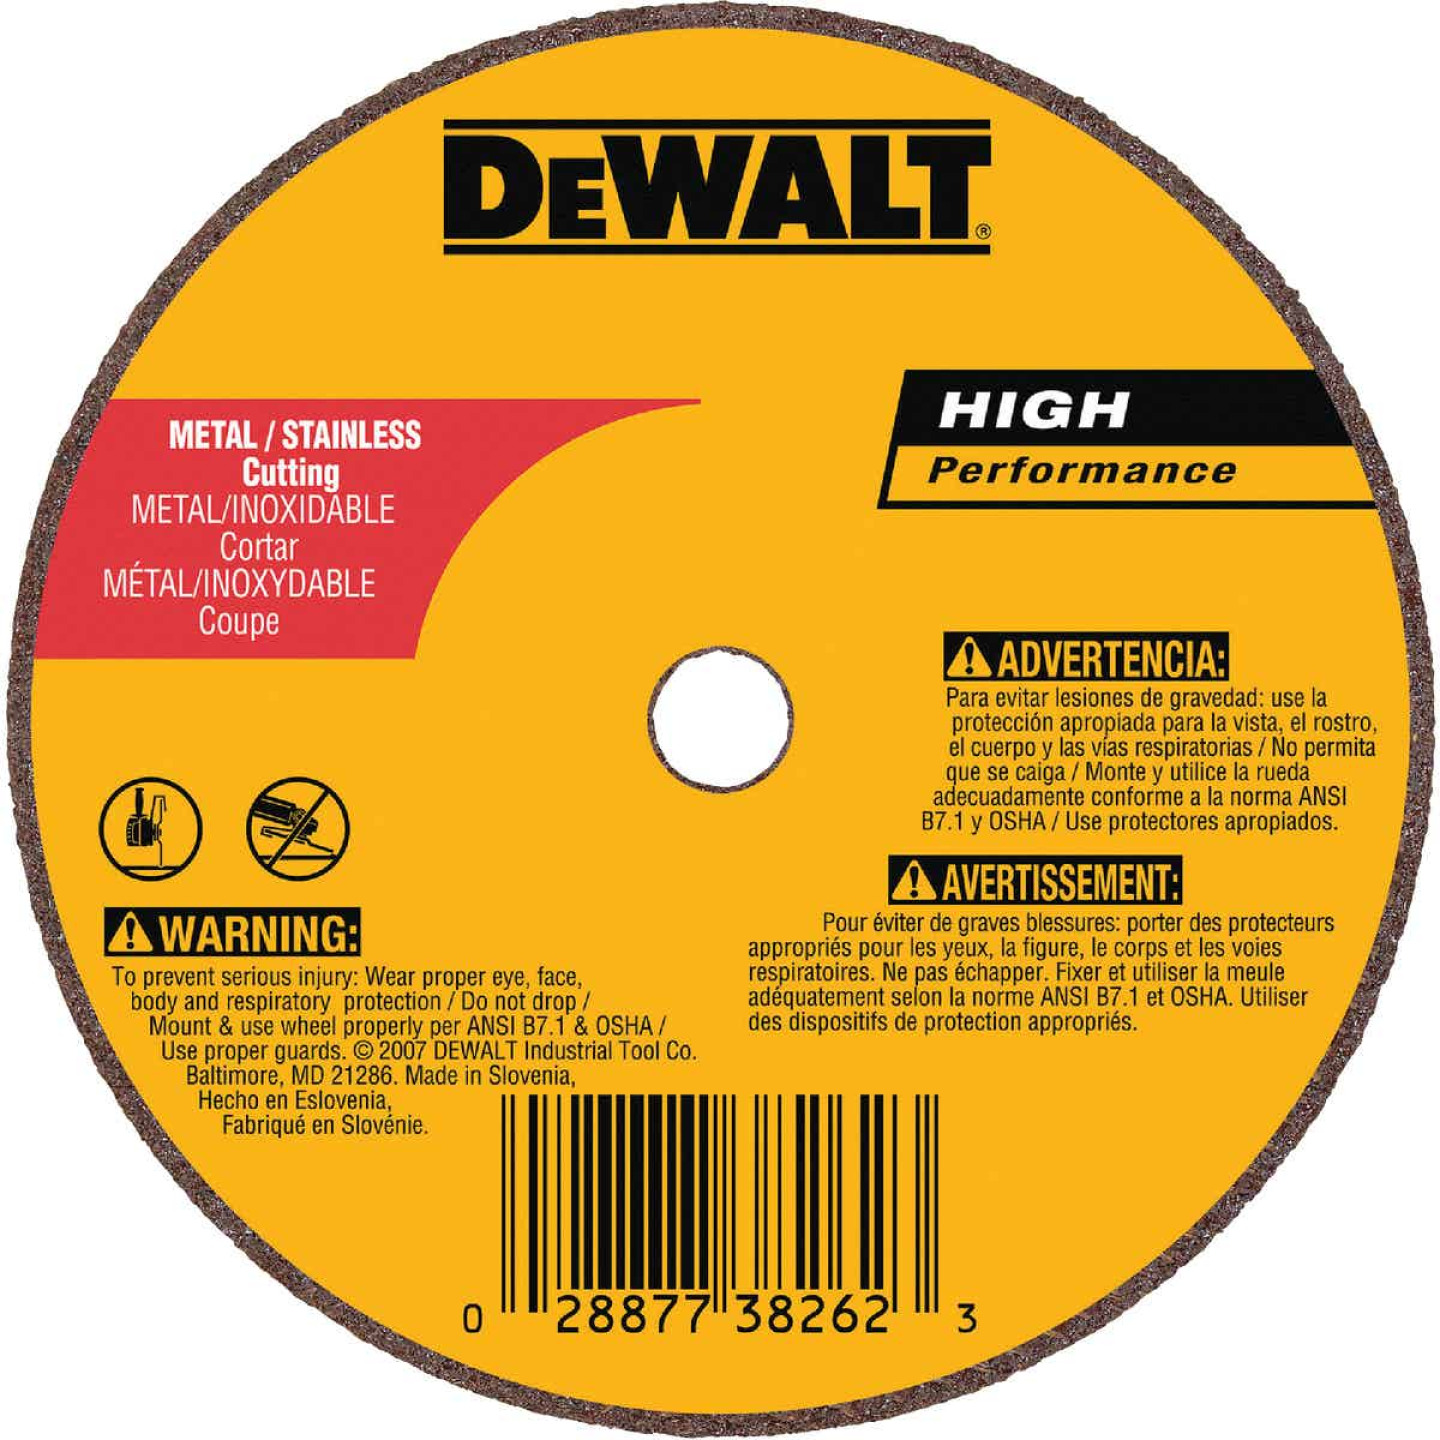 DeWalt HP Type 1 3 In. x 1/16 In. x 1/4 In. Metal/Stainless Cut-Off Wheel Image 1